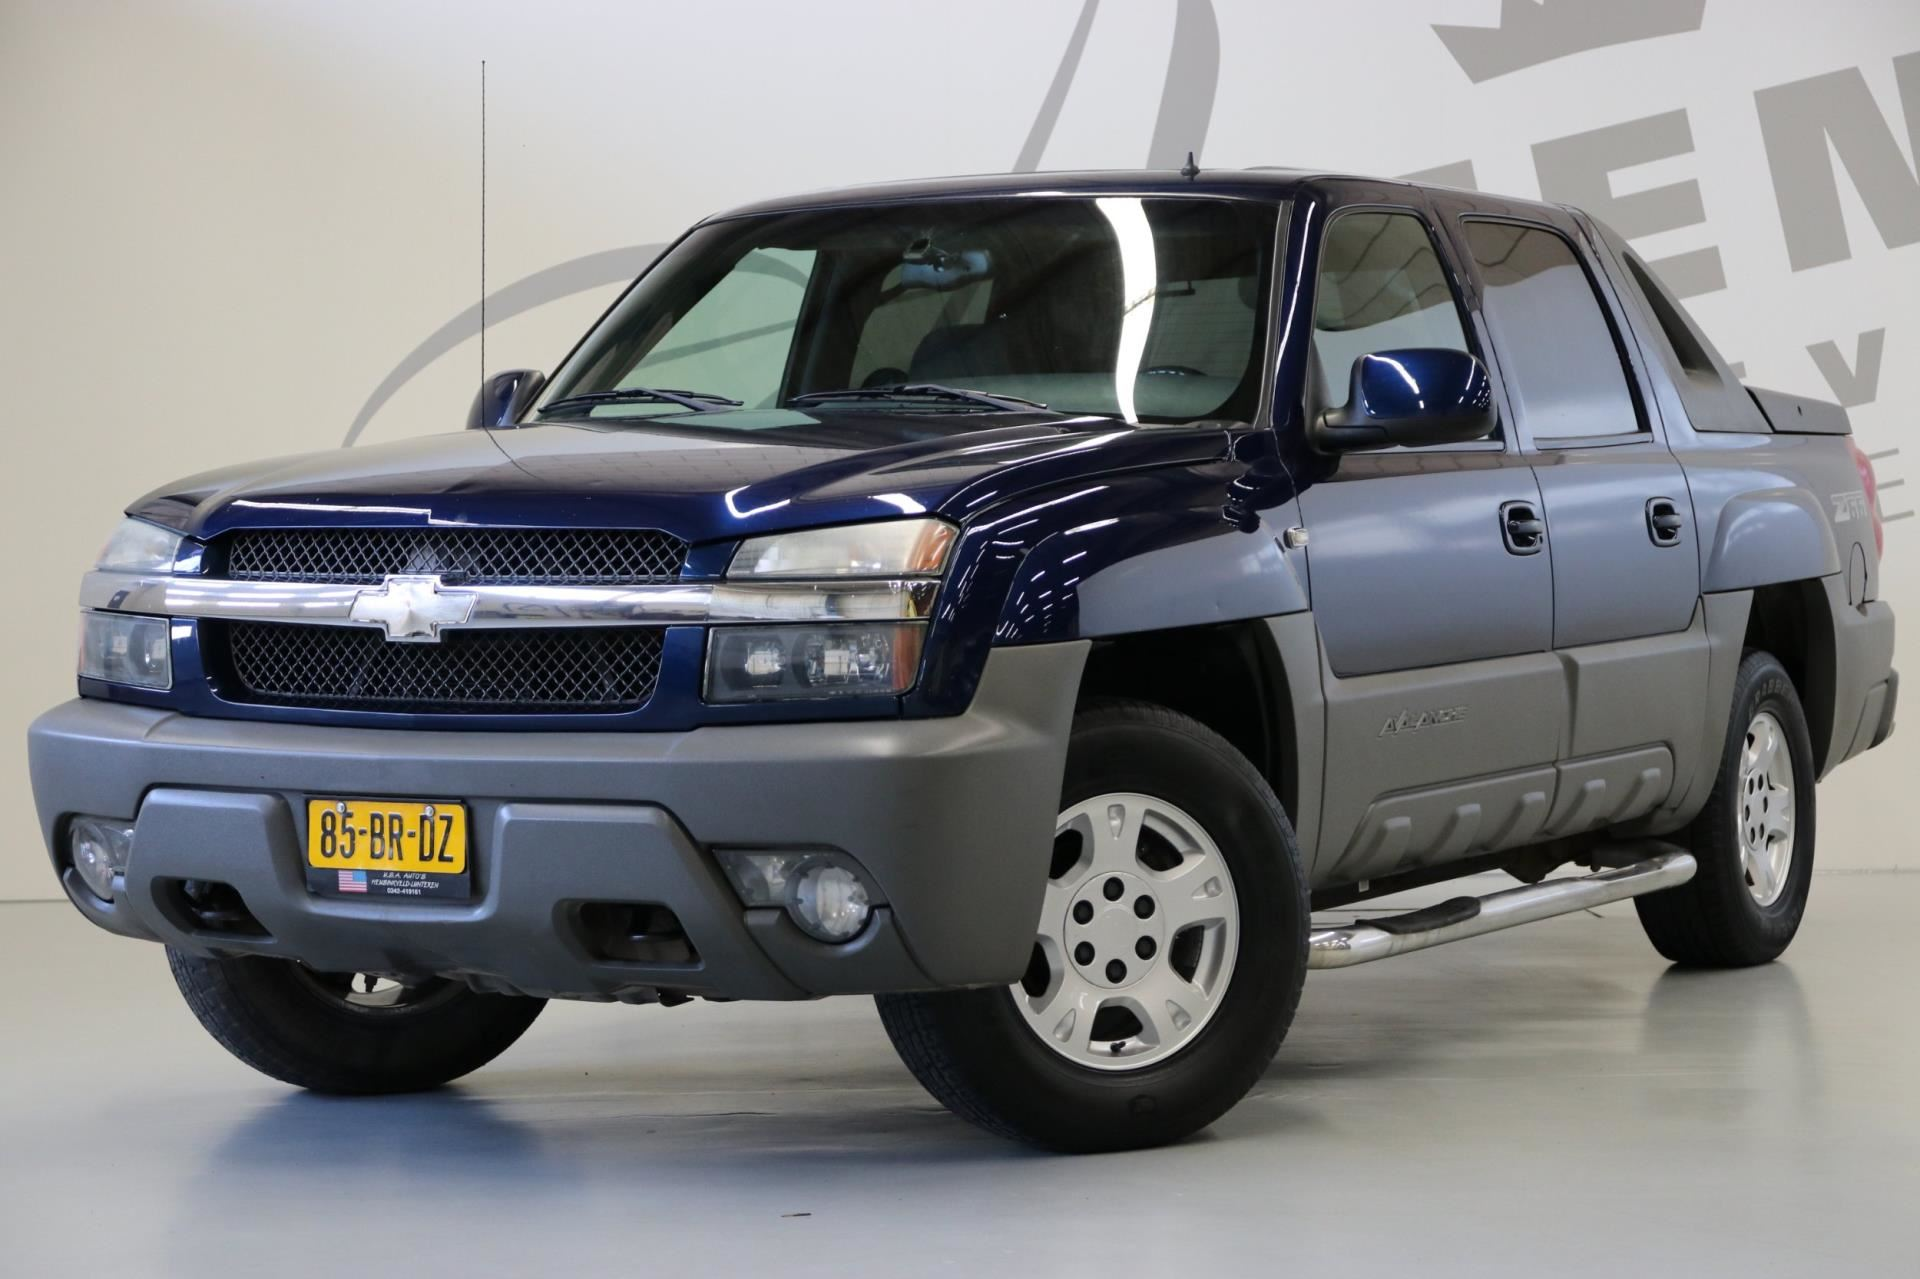 Chevrolet USA Avalanche occasion - Aeen Exclusieve Automobielen